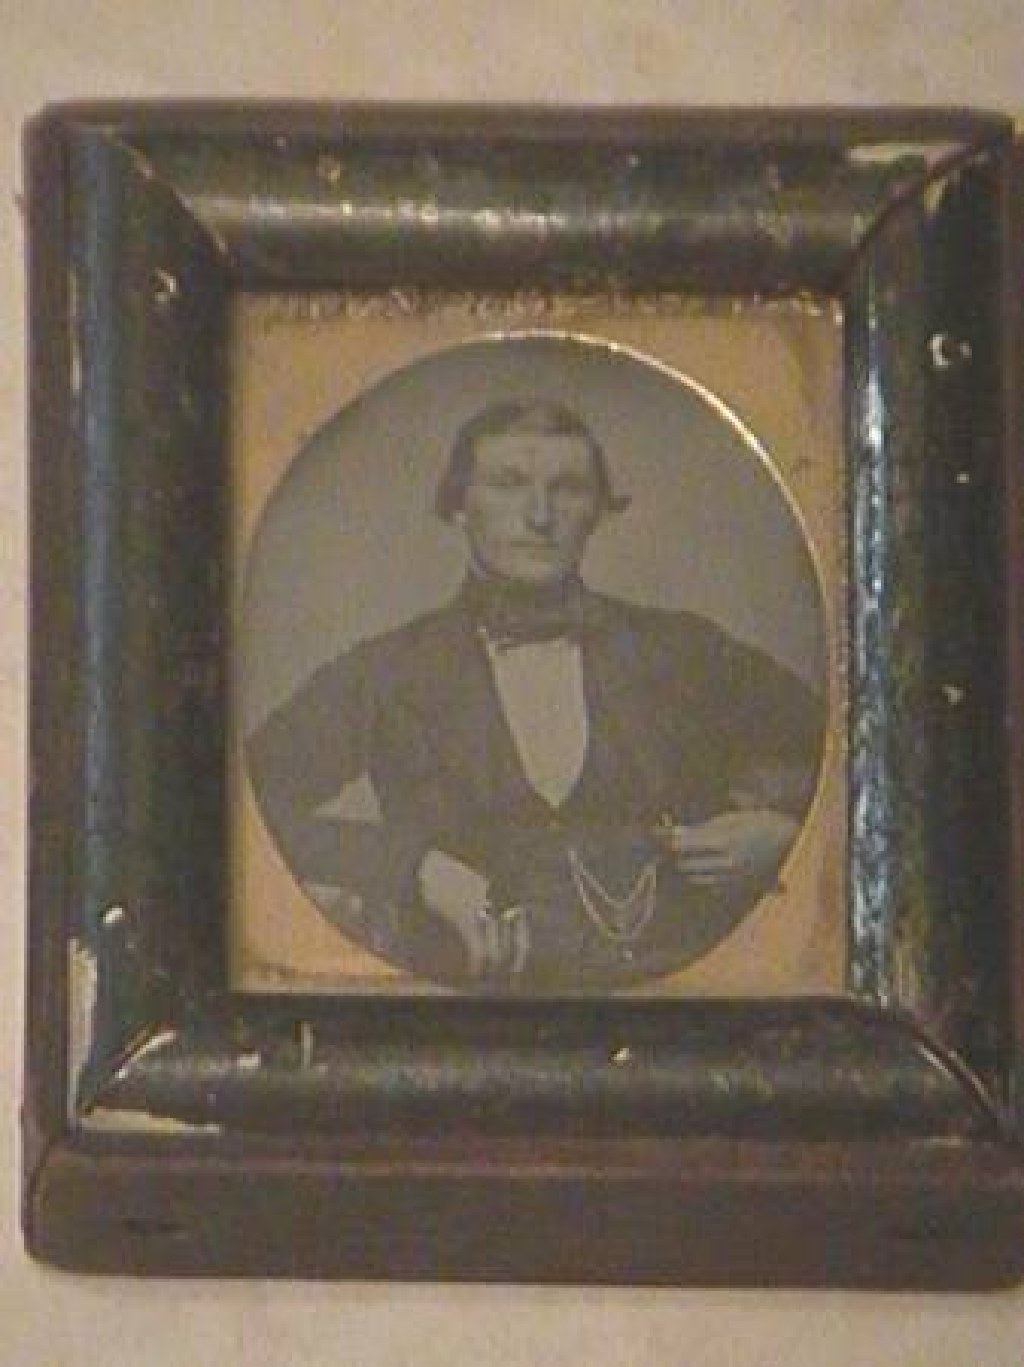 Antique Framed Tintype Photograph of man in a Suit